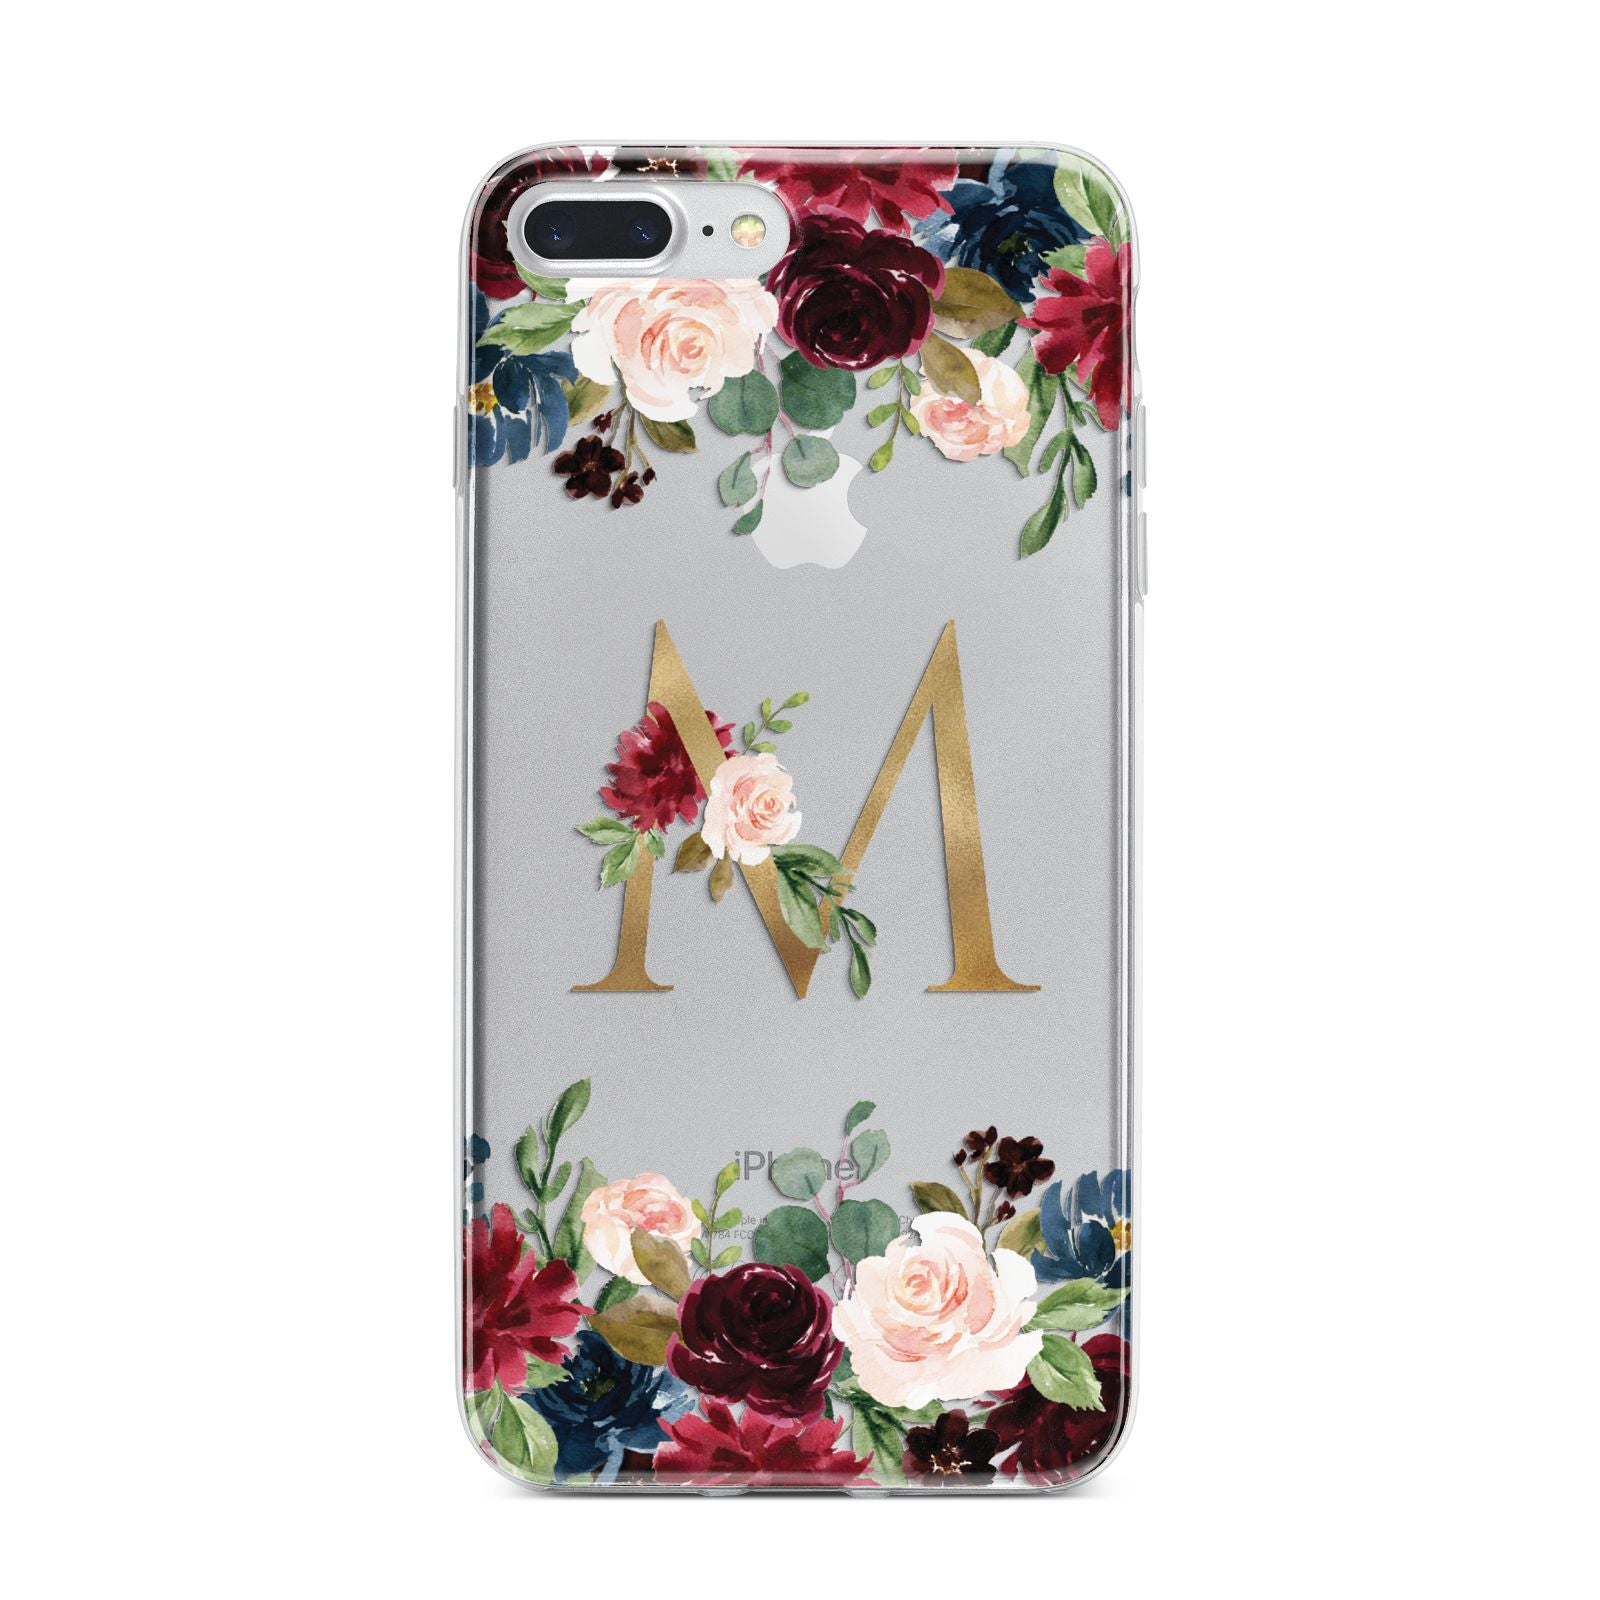 Personalised Clear Monogram Floral iPhone 7 Plus Bumper Case on Silver iPhone